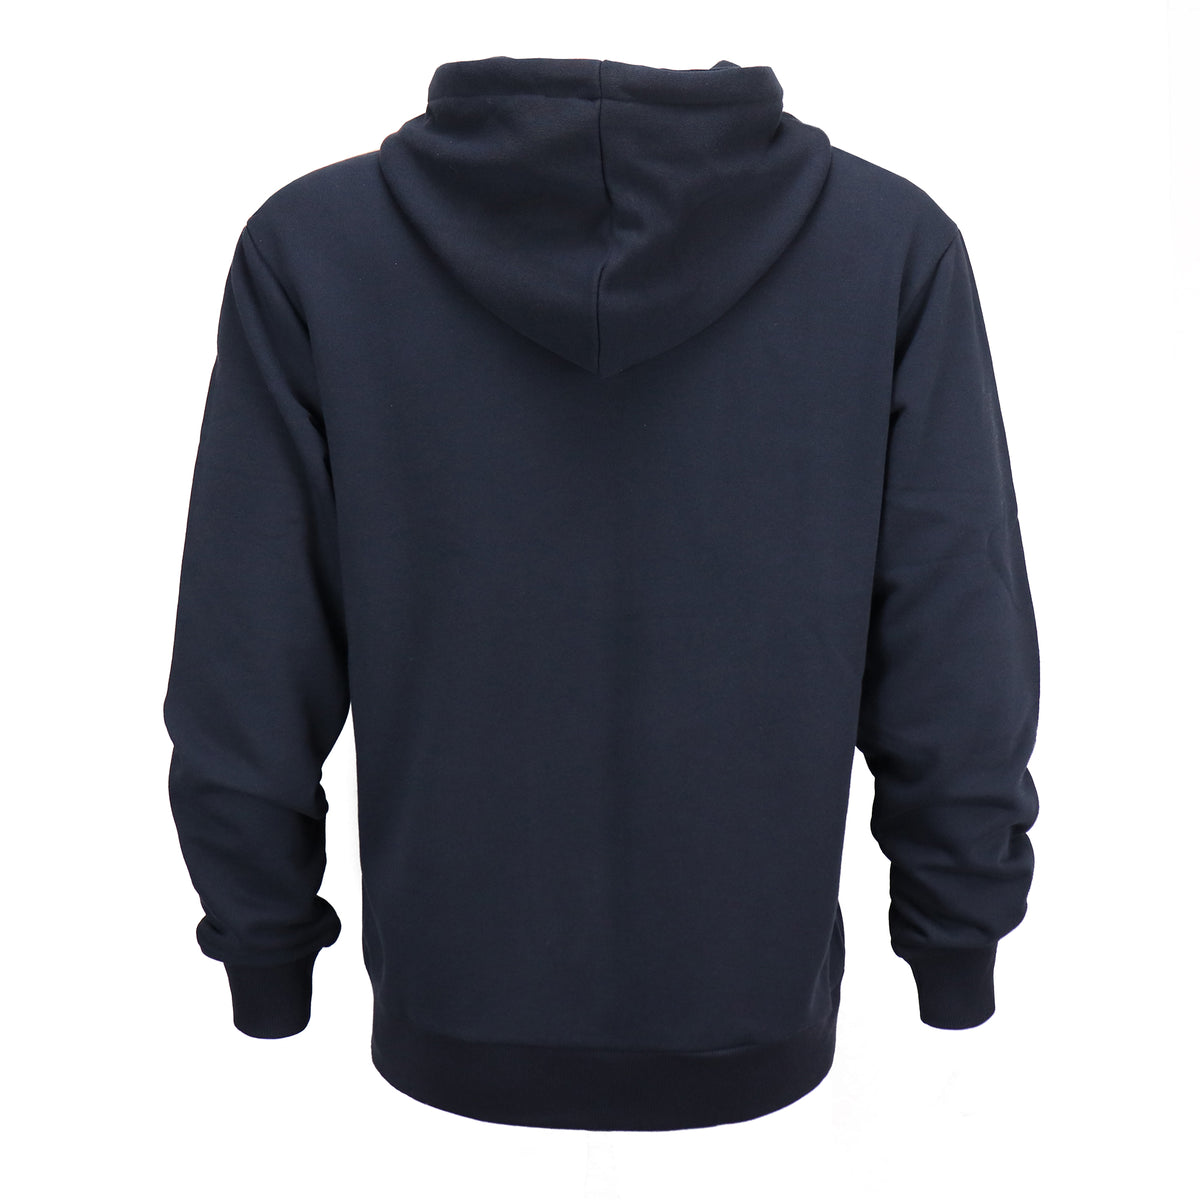 Navy Donut Hoodie - Section 119